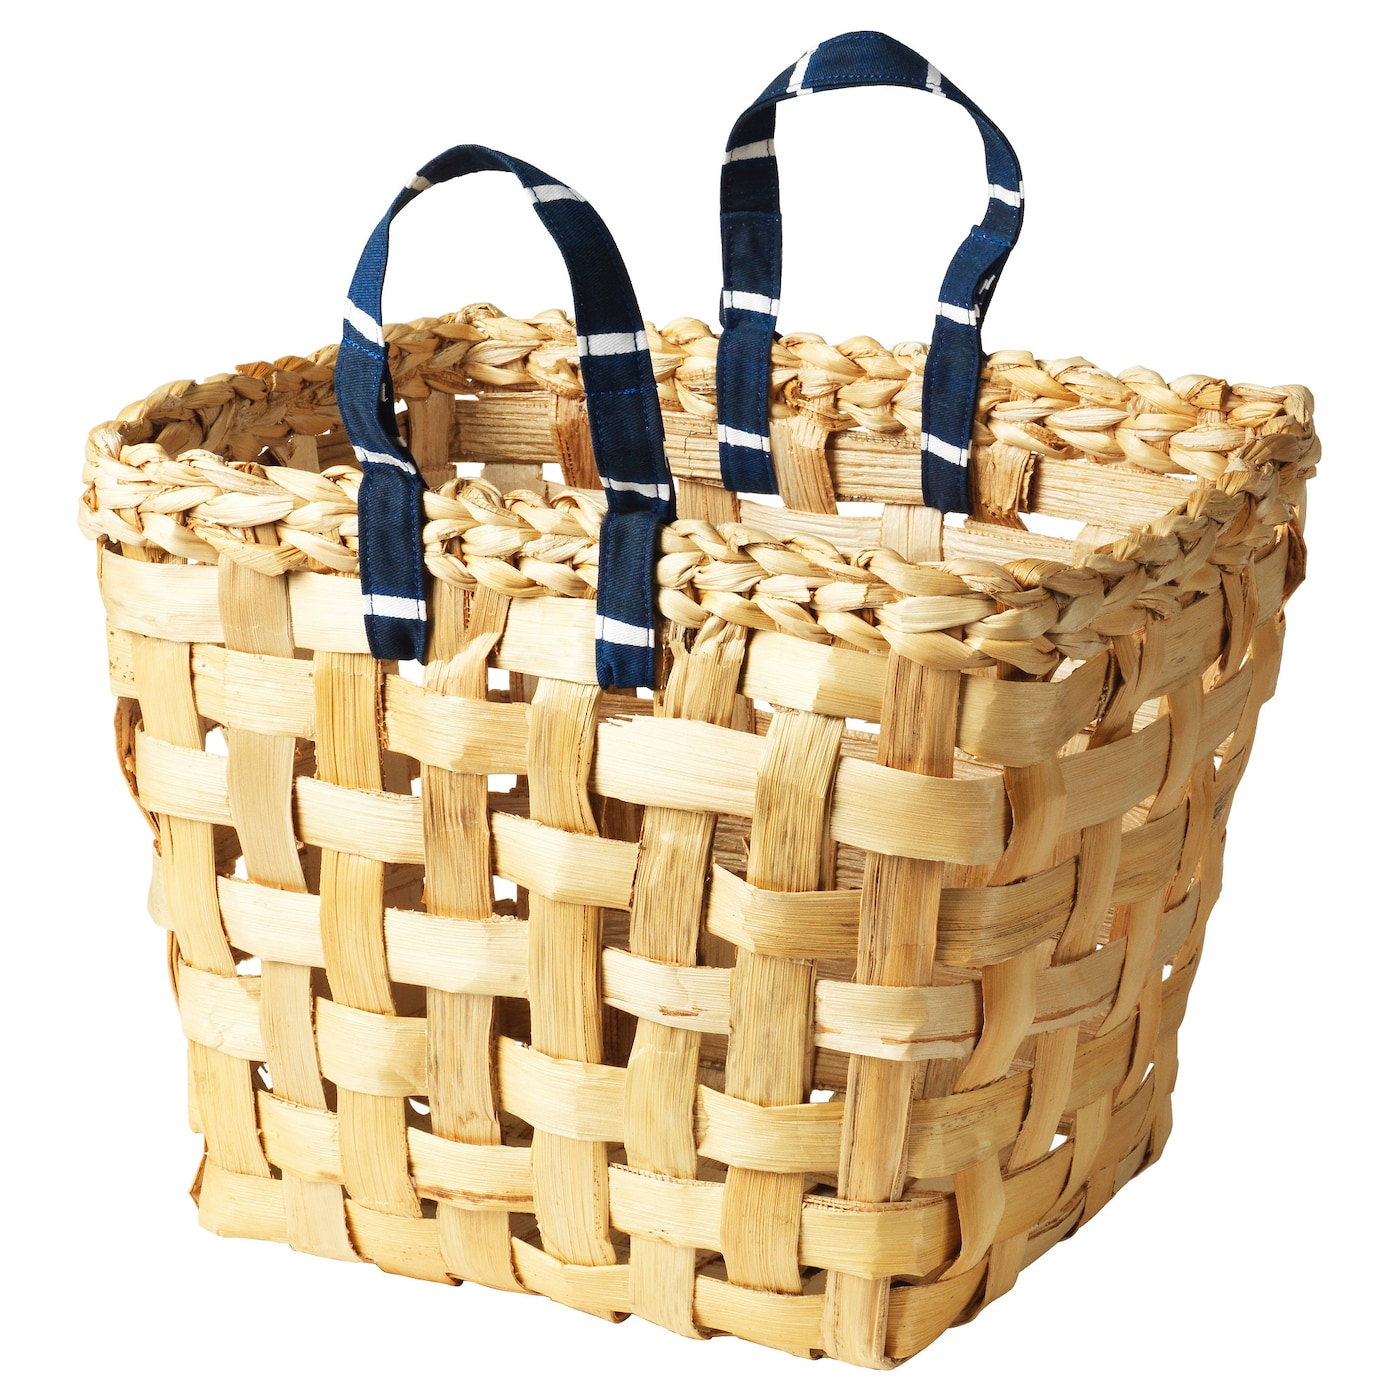 IKEA INNEHÅLLSRIK basket Each basket is woven by hand and is therefore unique.